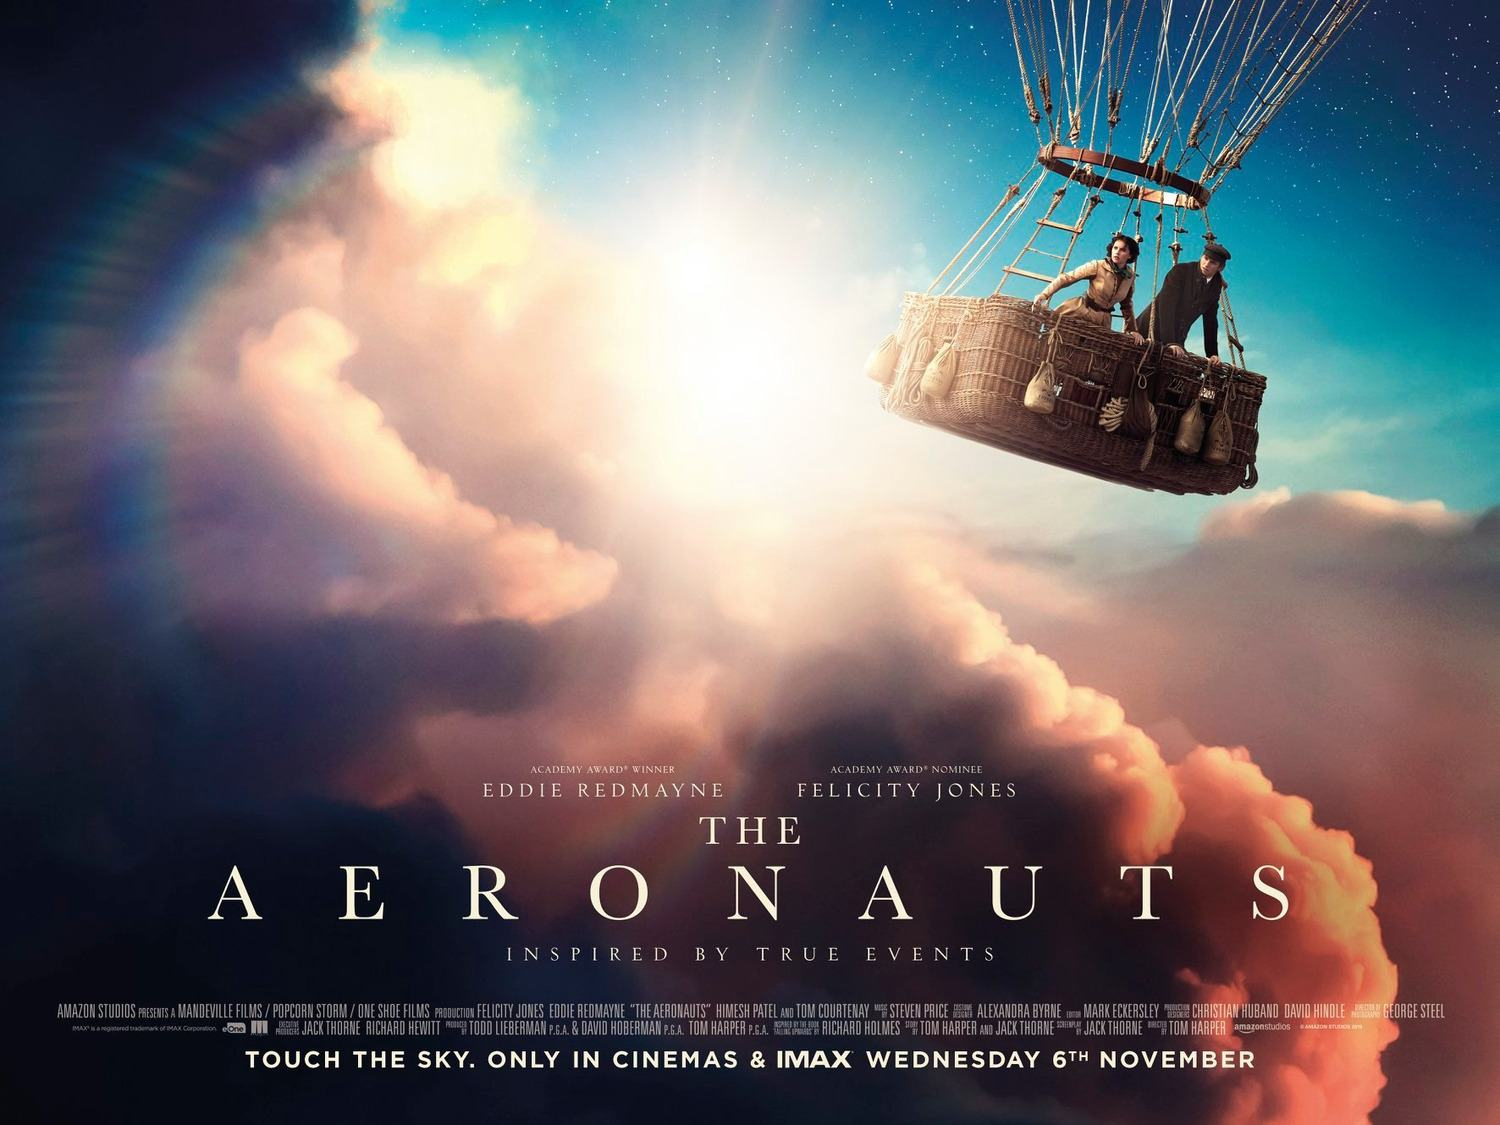 The Aeronauts editor Mark Eckersley editor of black mirror, the crown, peaky blinders and more